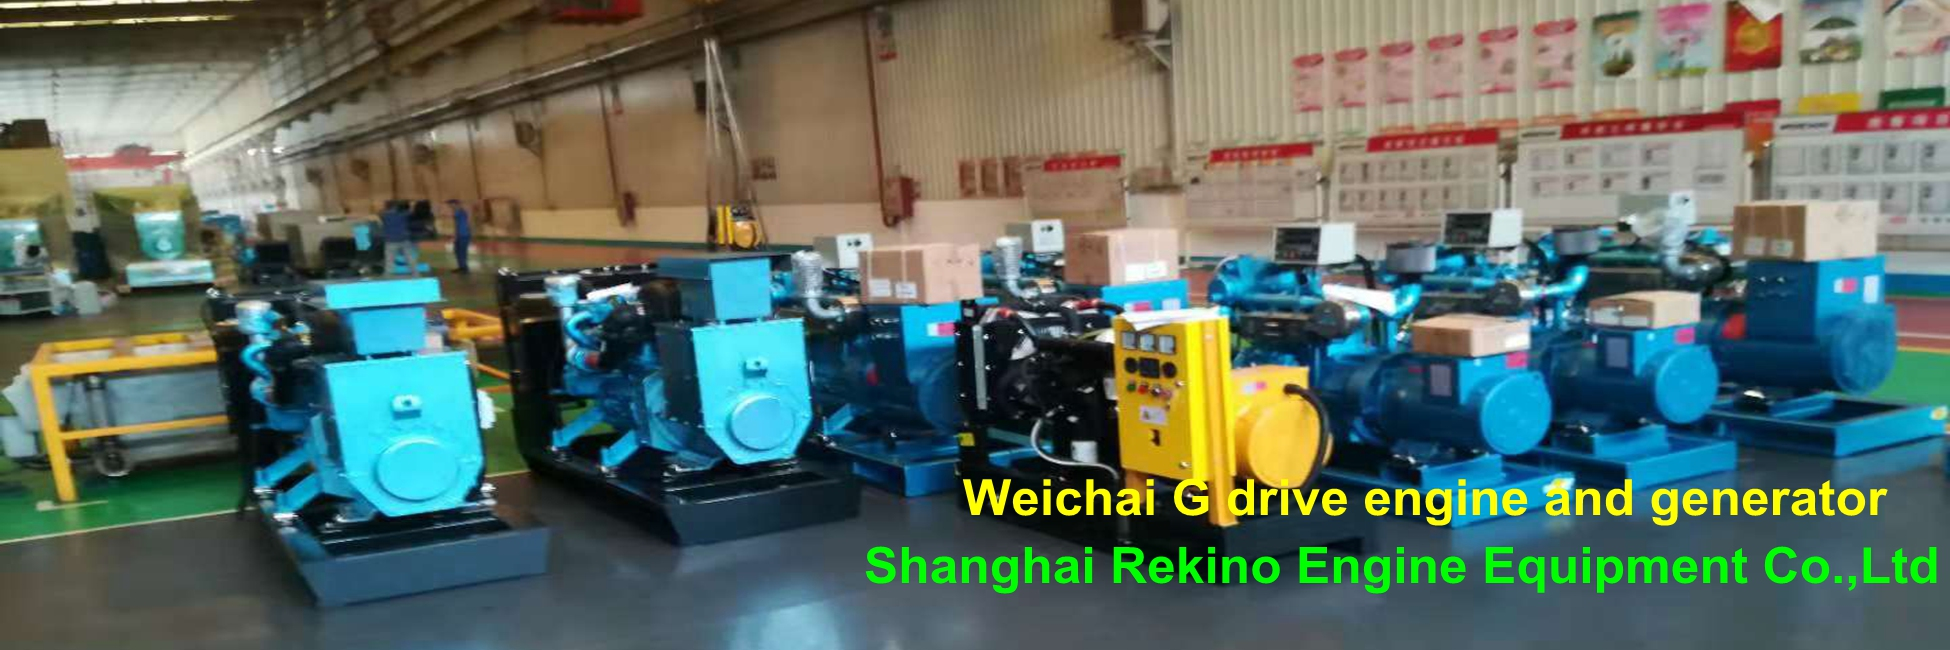 Weichai G drive engine and generator banner